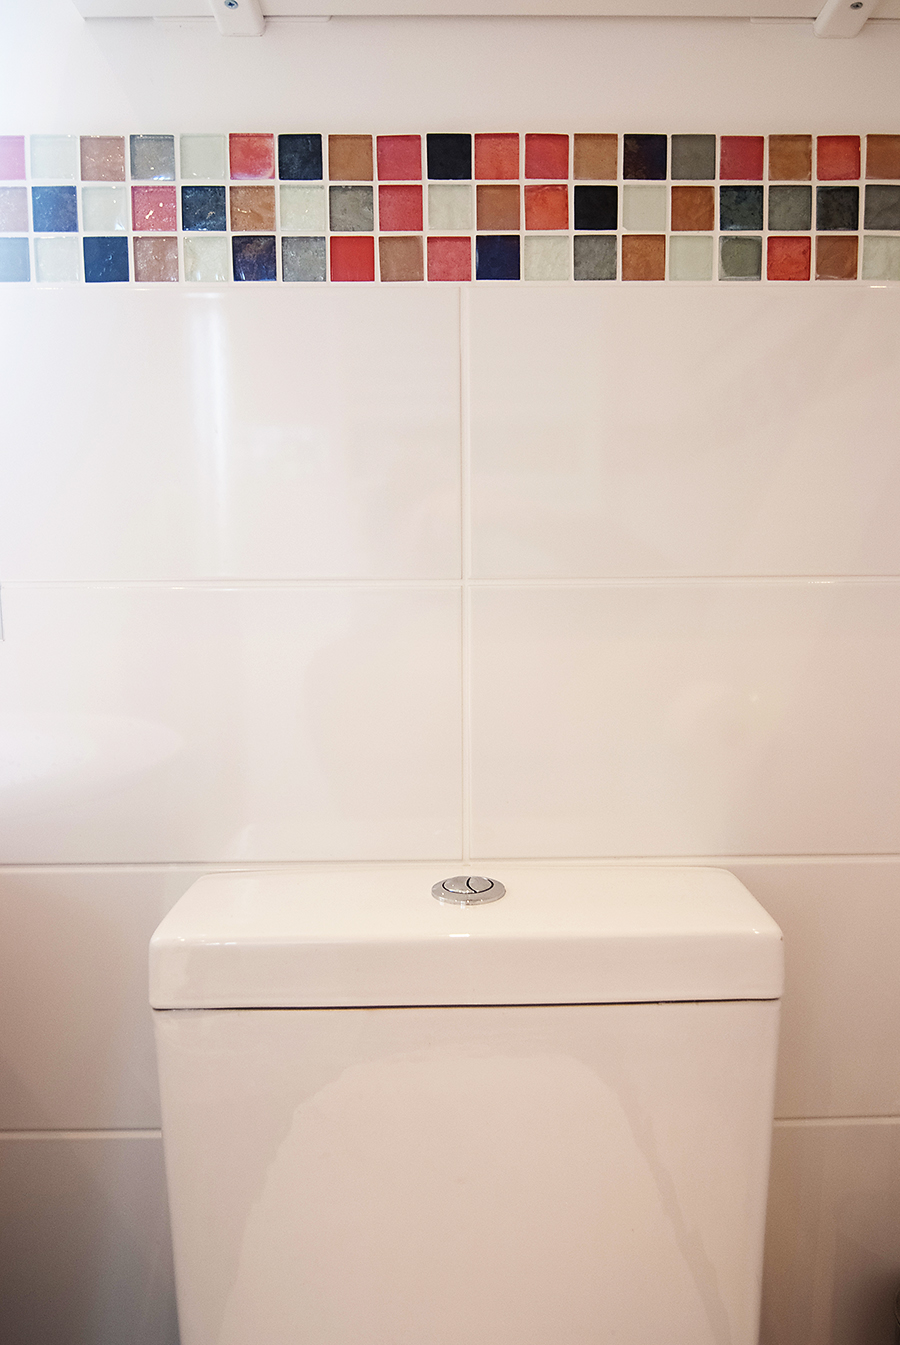 Tiling Notley in Essex